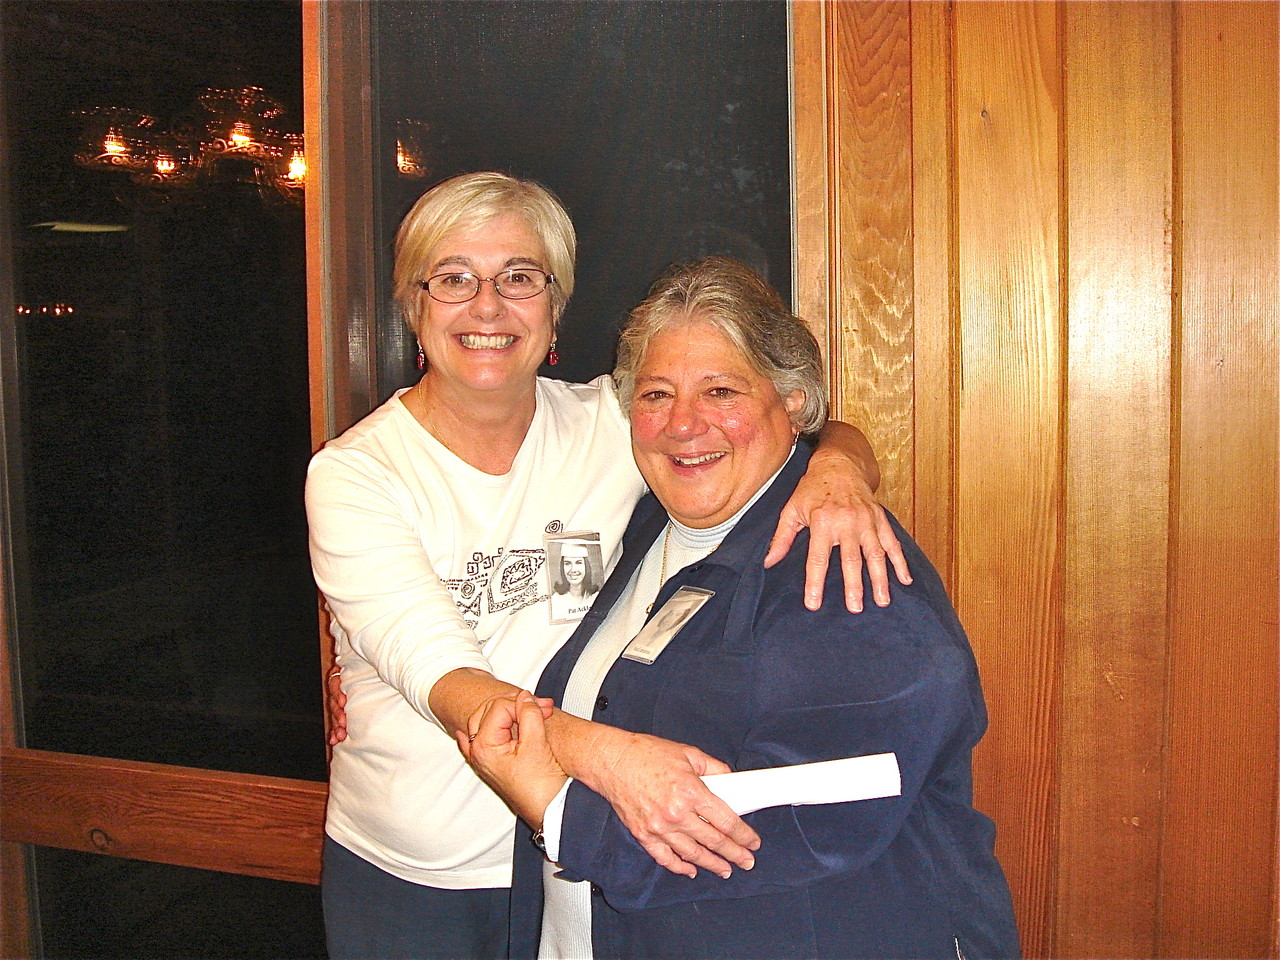 Pat Ackley & Susan Lamanna, one of the organizers!